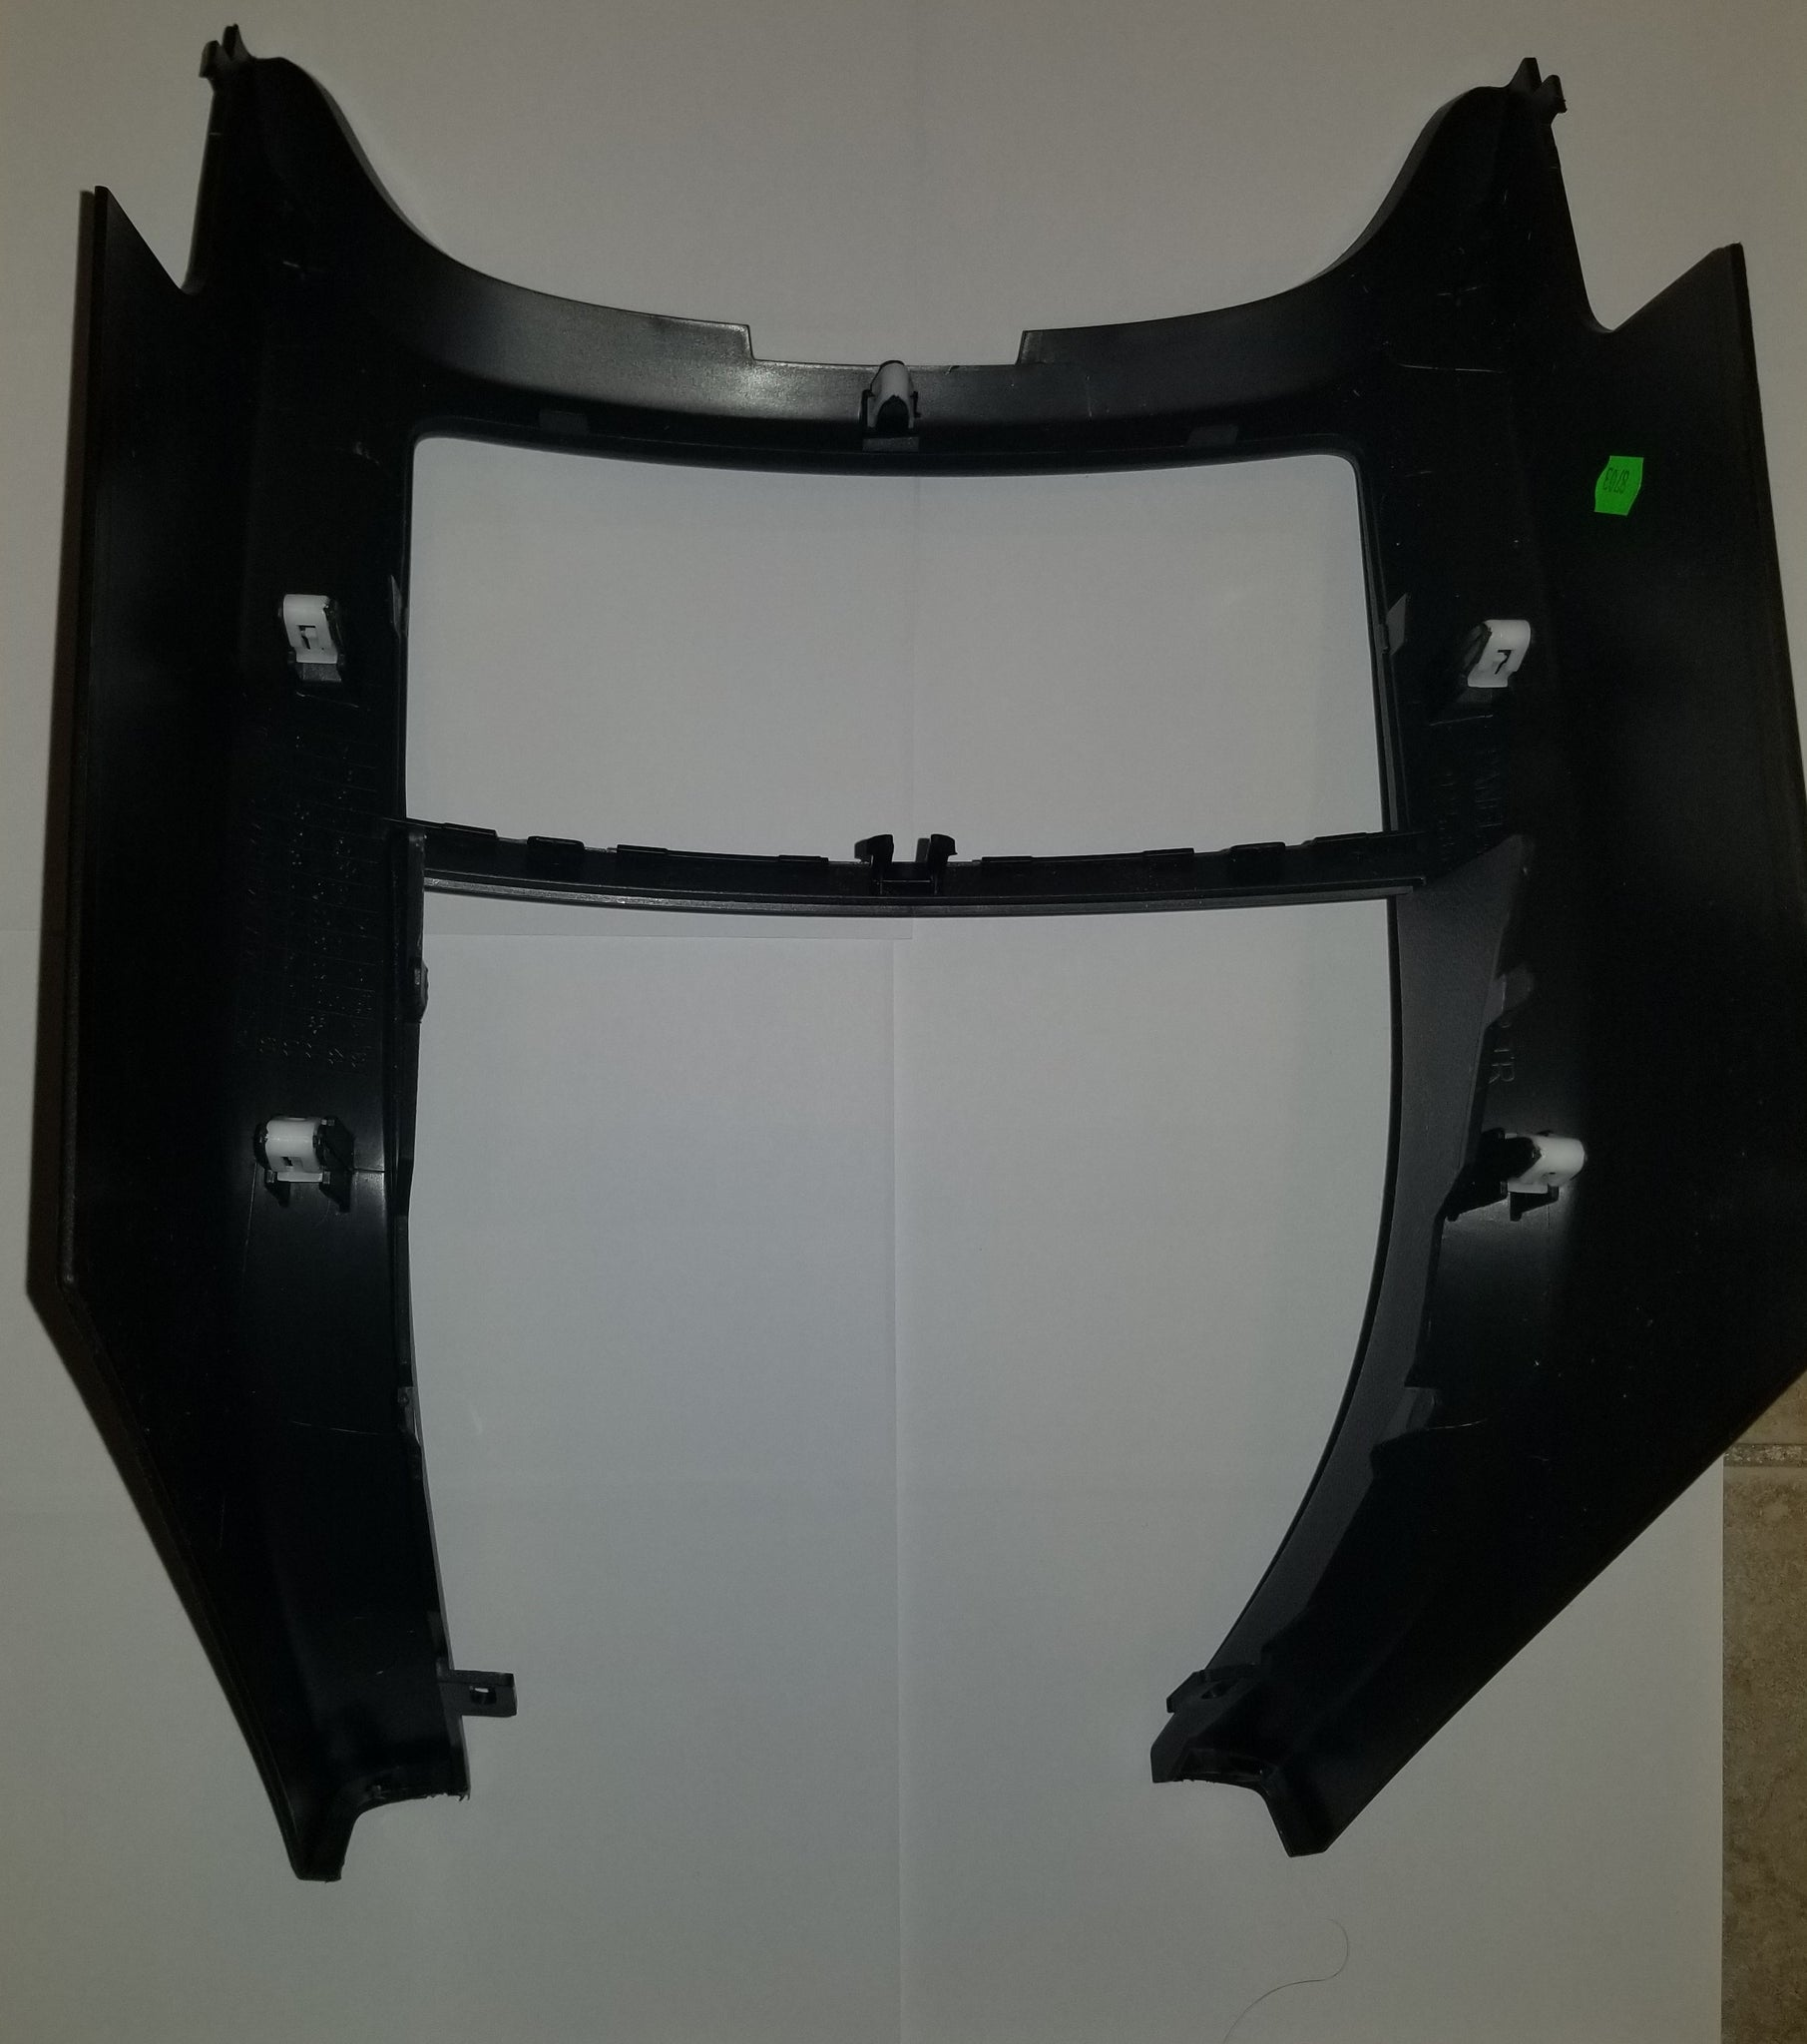 chevy caprice 9c3 center bezel trim commodore specialties chevy caprice 9c3 center bezel trim